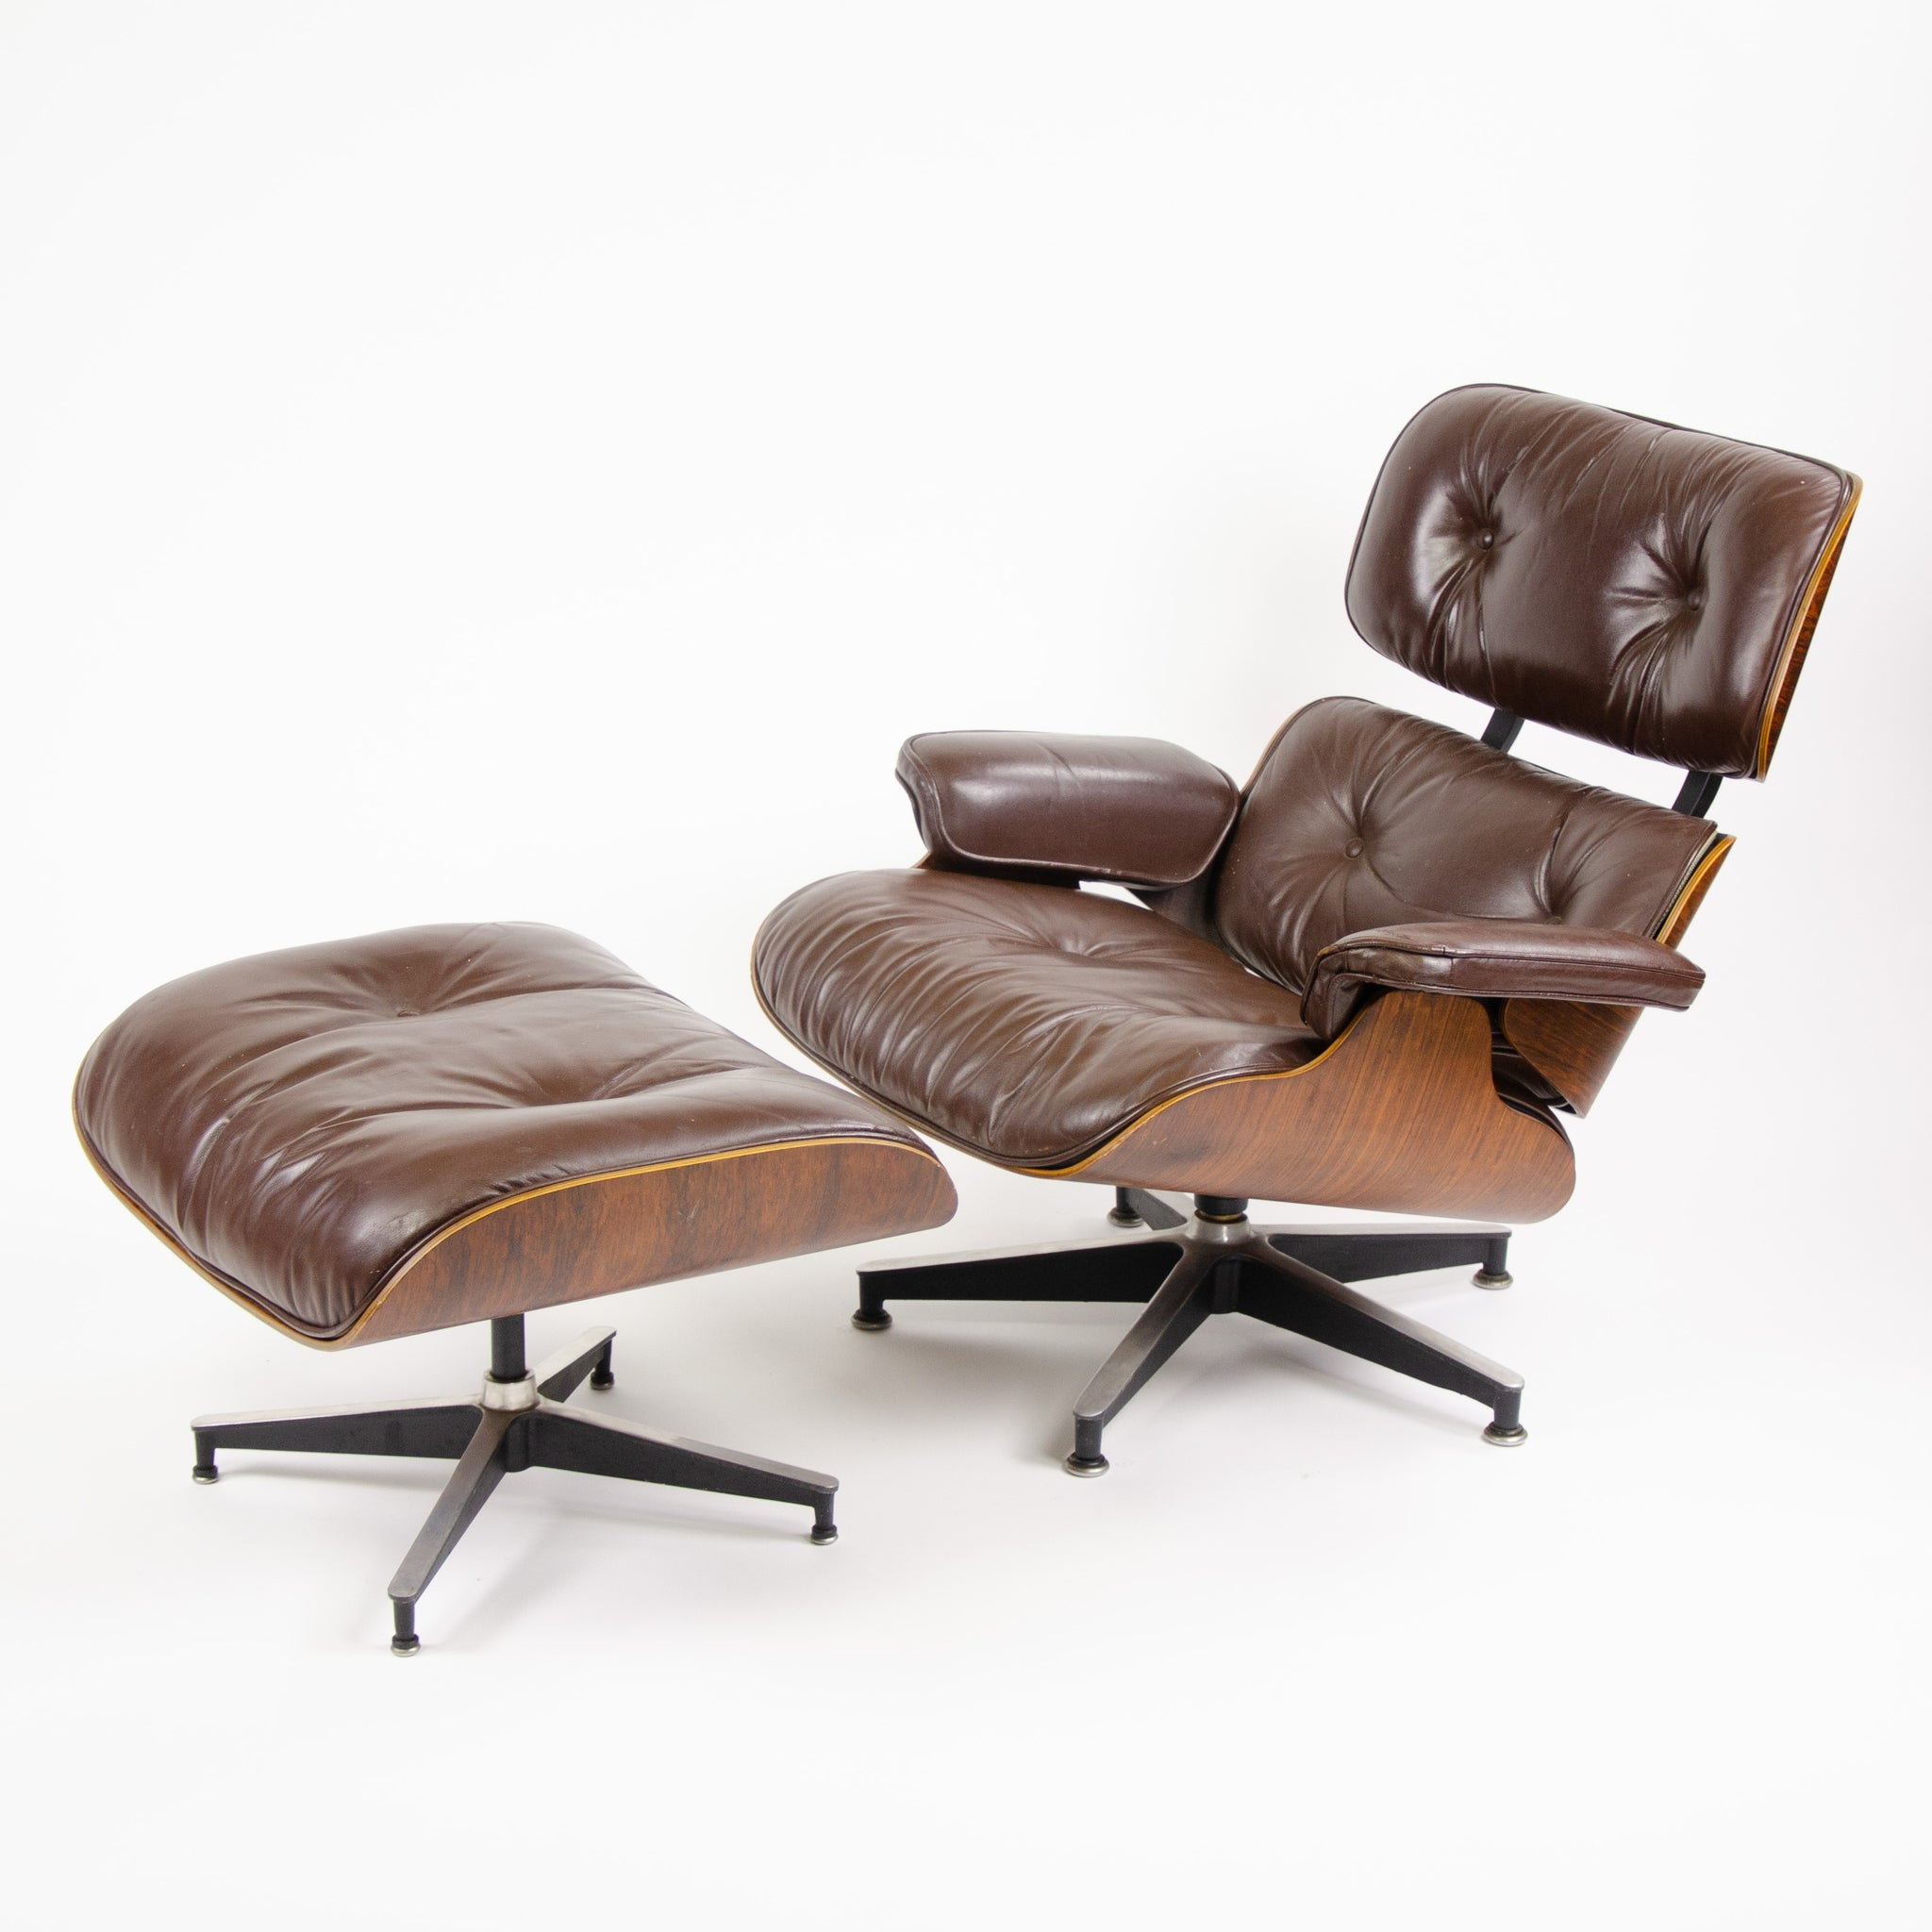 1970u0027s Herman Miller Eames Lounge Chair U0026 Ottoman Rosewood 670 671 Brown  Leather